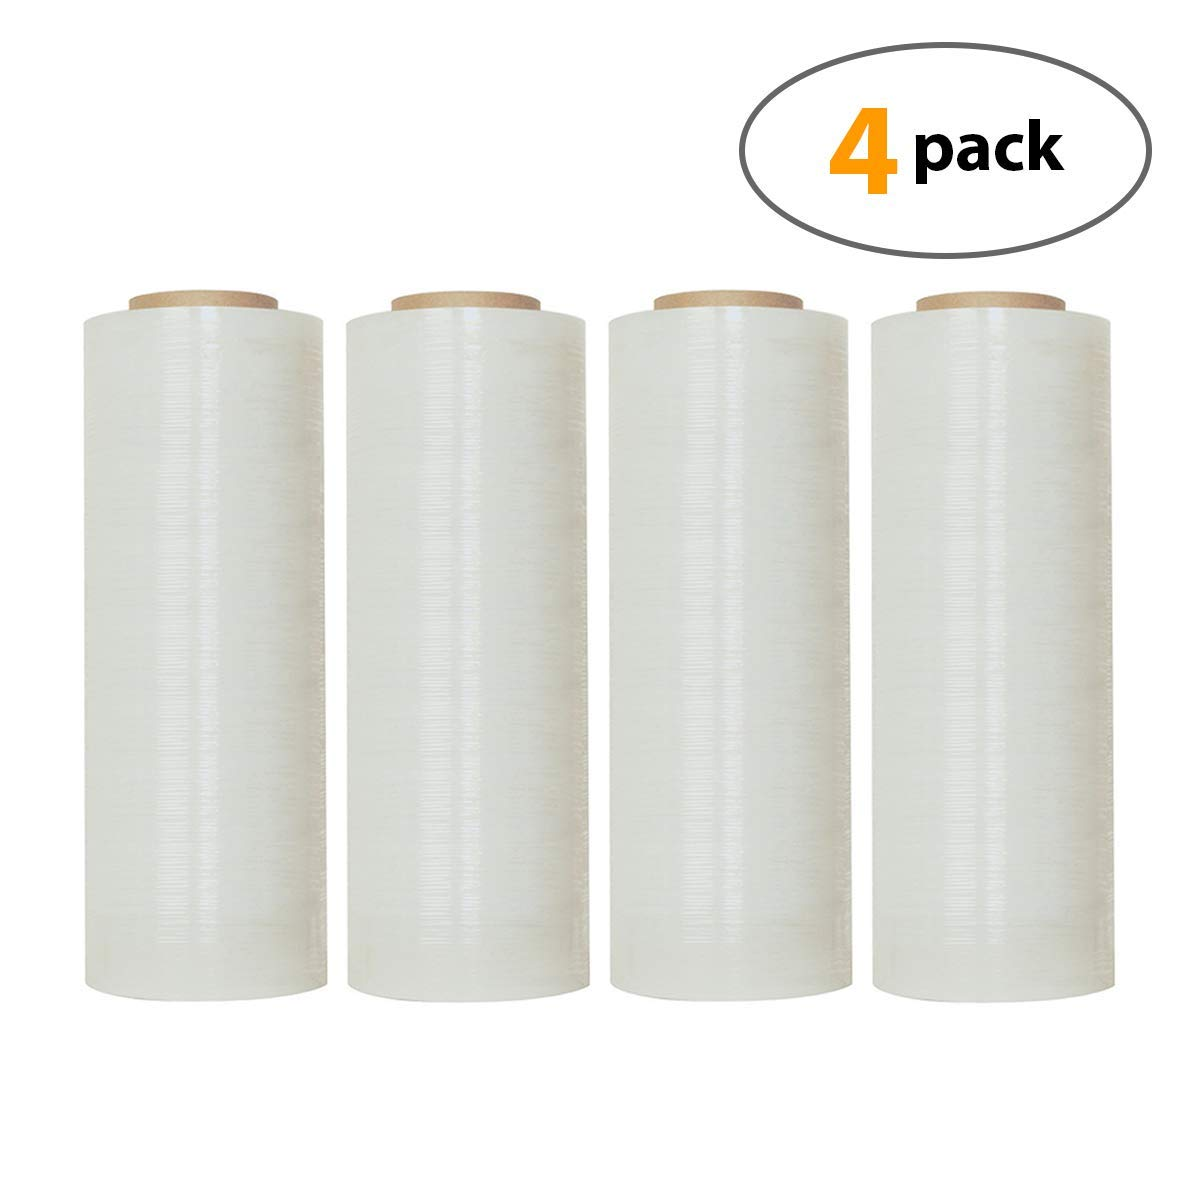 18'' X 1500 Feet Industrial Strength Pallet Shrink Wrap, 8.25 Lbs Per Roll, 80 Gauge(20 Micron) Heavy Duty Self-Adhesive Stretch Film Wrap for Packing, Moving, Boxes, Pallets (4 Rolls)